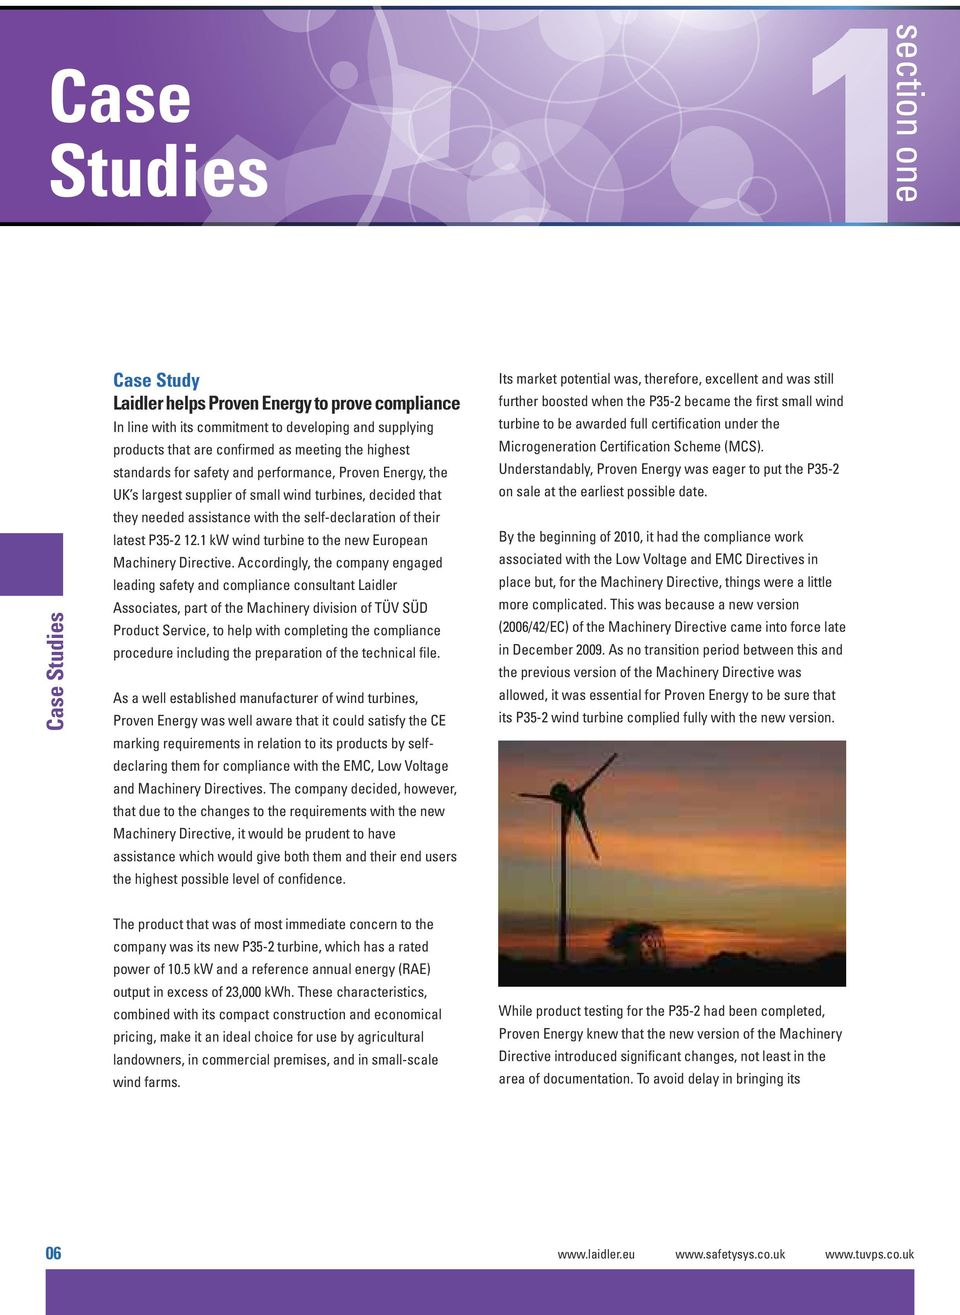 1 kw wind turbine to the new European Machinery Directive.